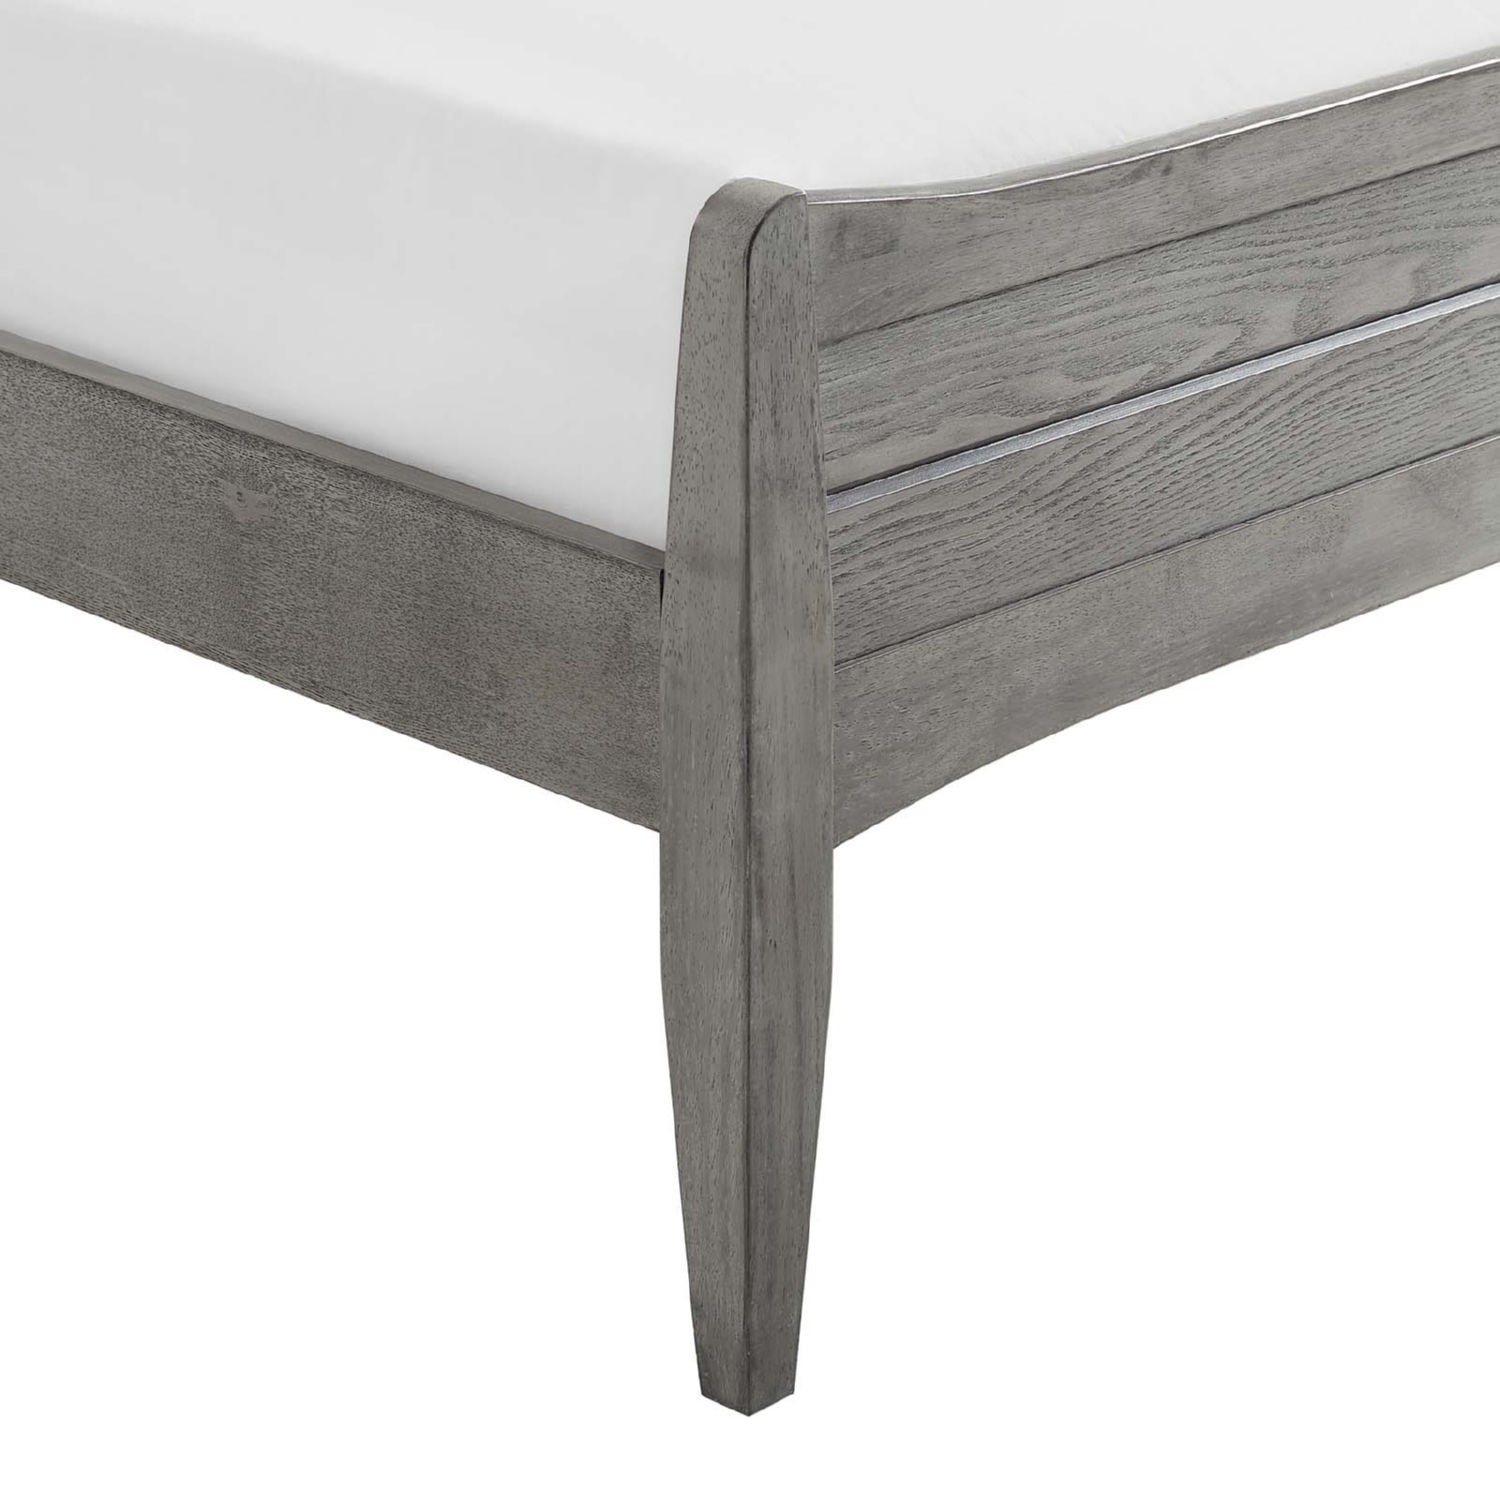 Rustic Queen Platform Bed In Gray Wood Finish - image-4